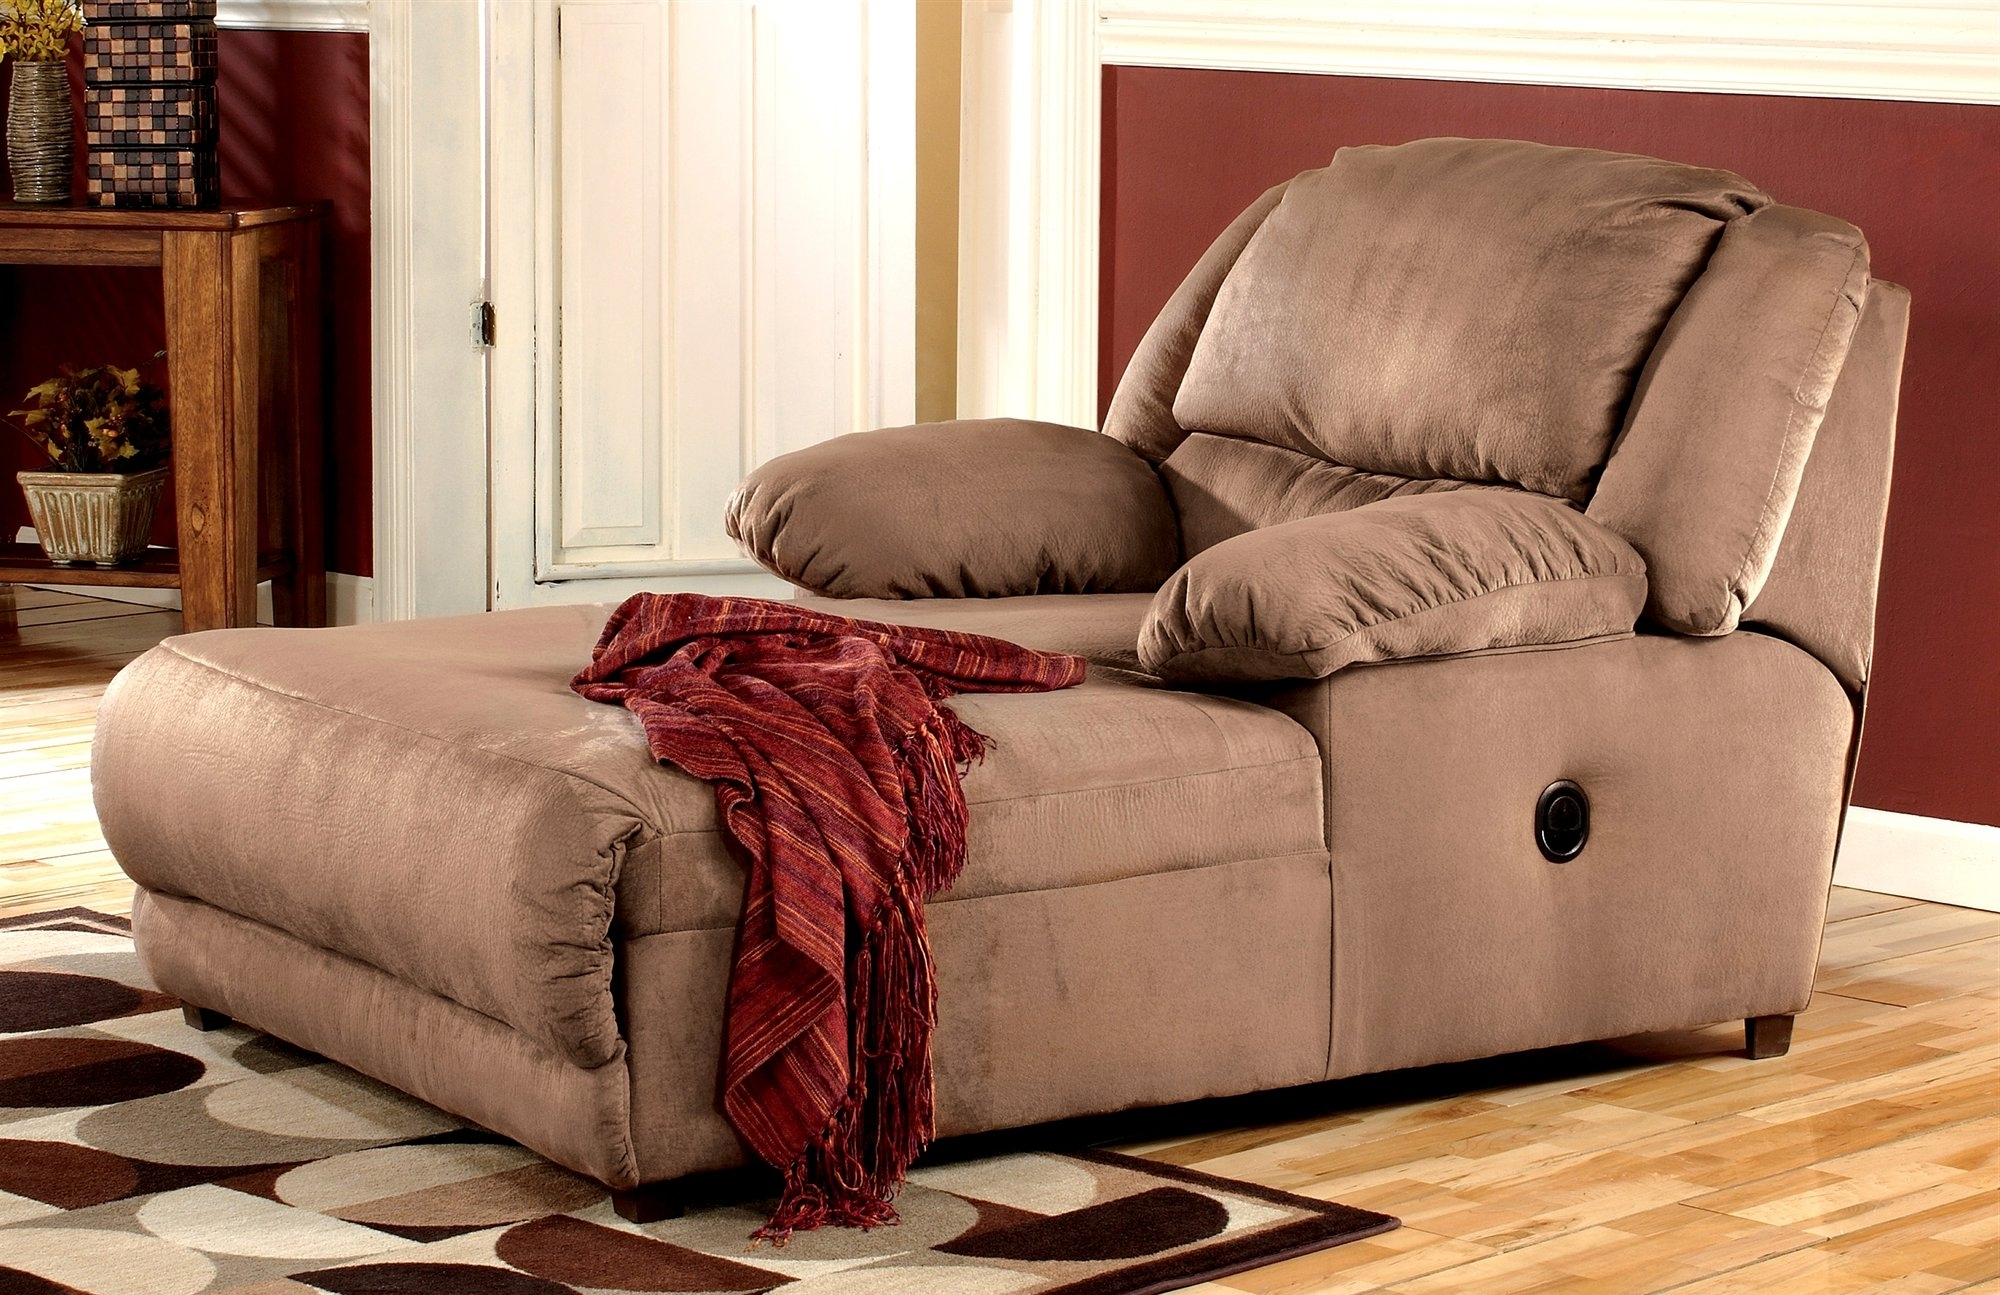 Favorite Interior: Lounge Chaise Indoor Chaise Lounge Indoor Indoor Chaise Within Indoor Chaise Lounges (View 6 of 15)